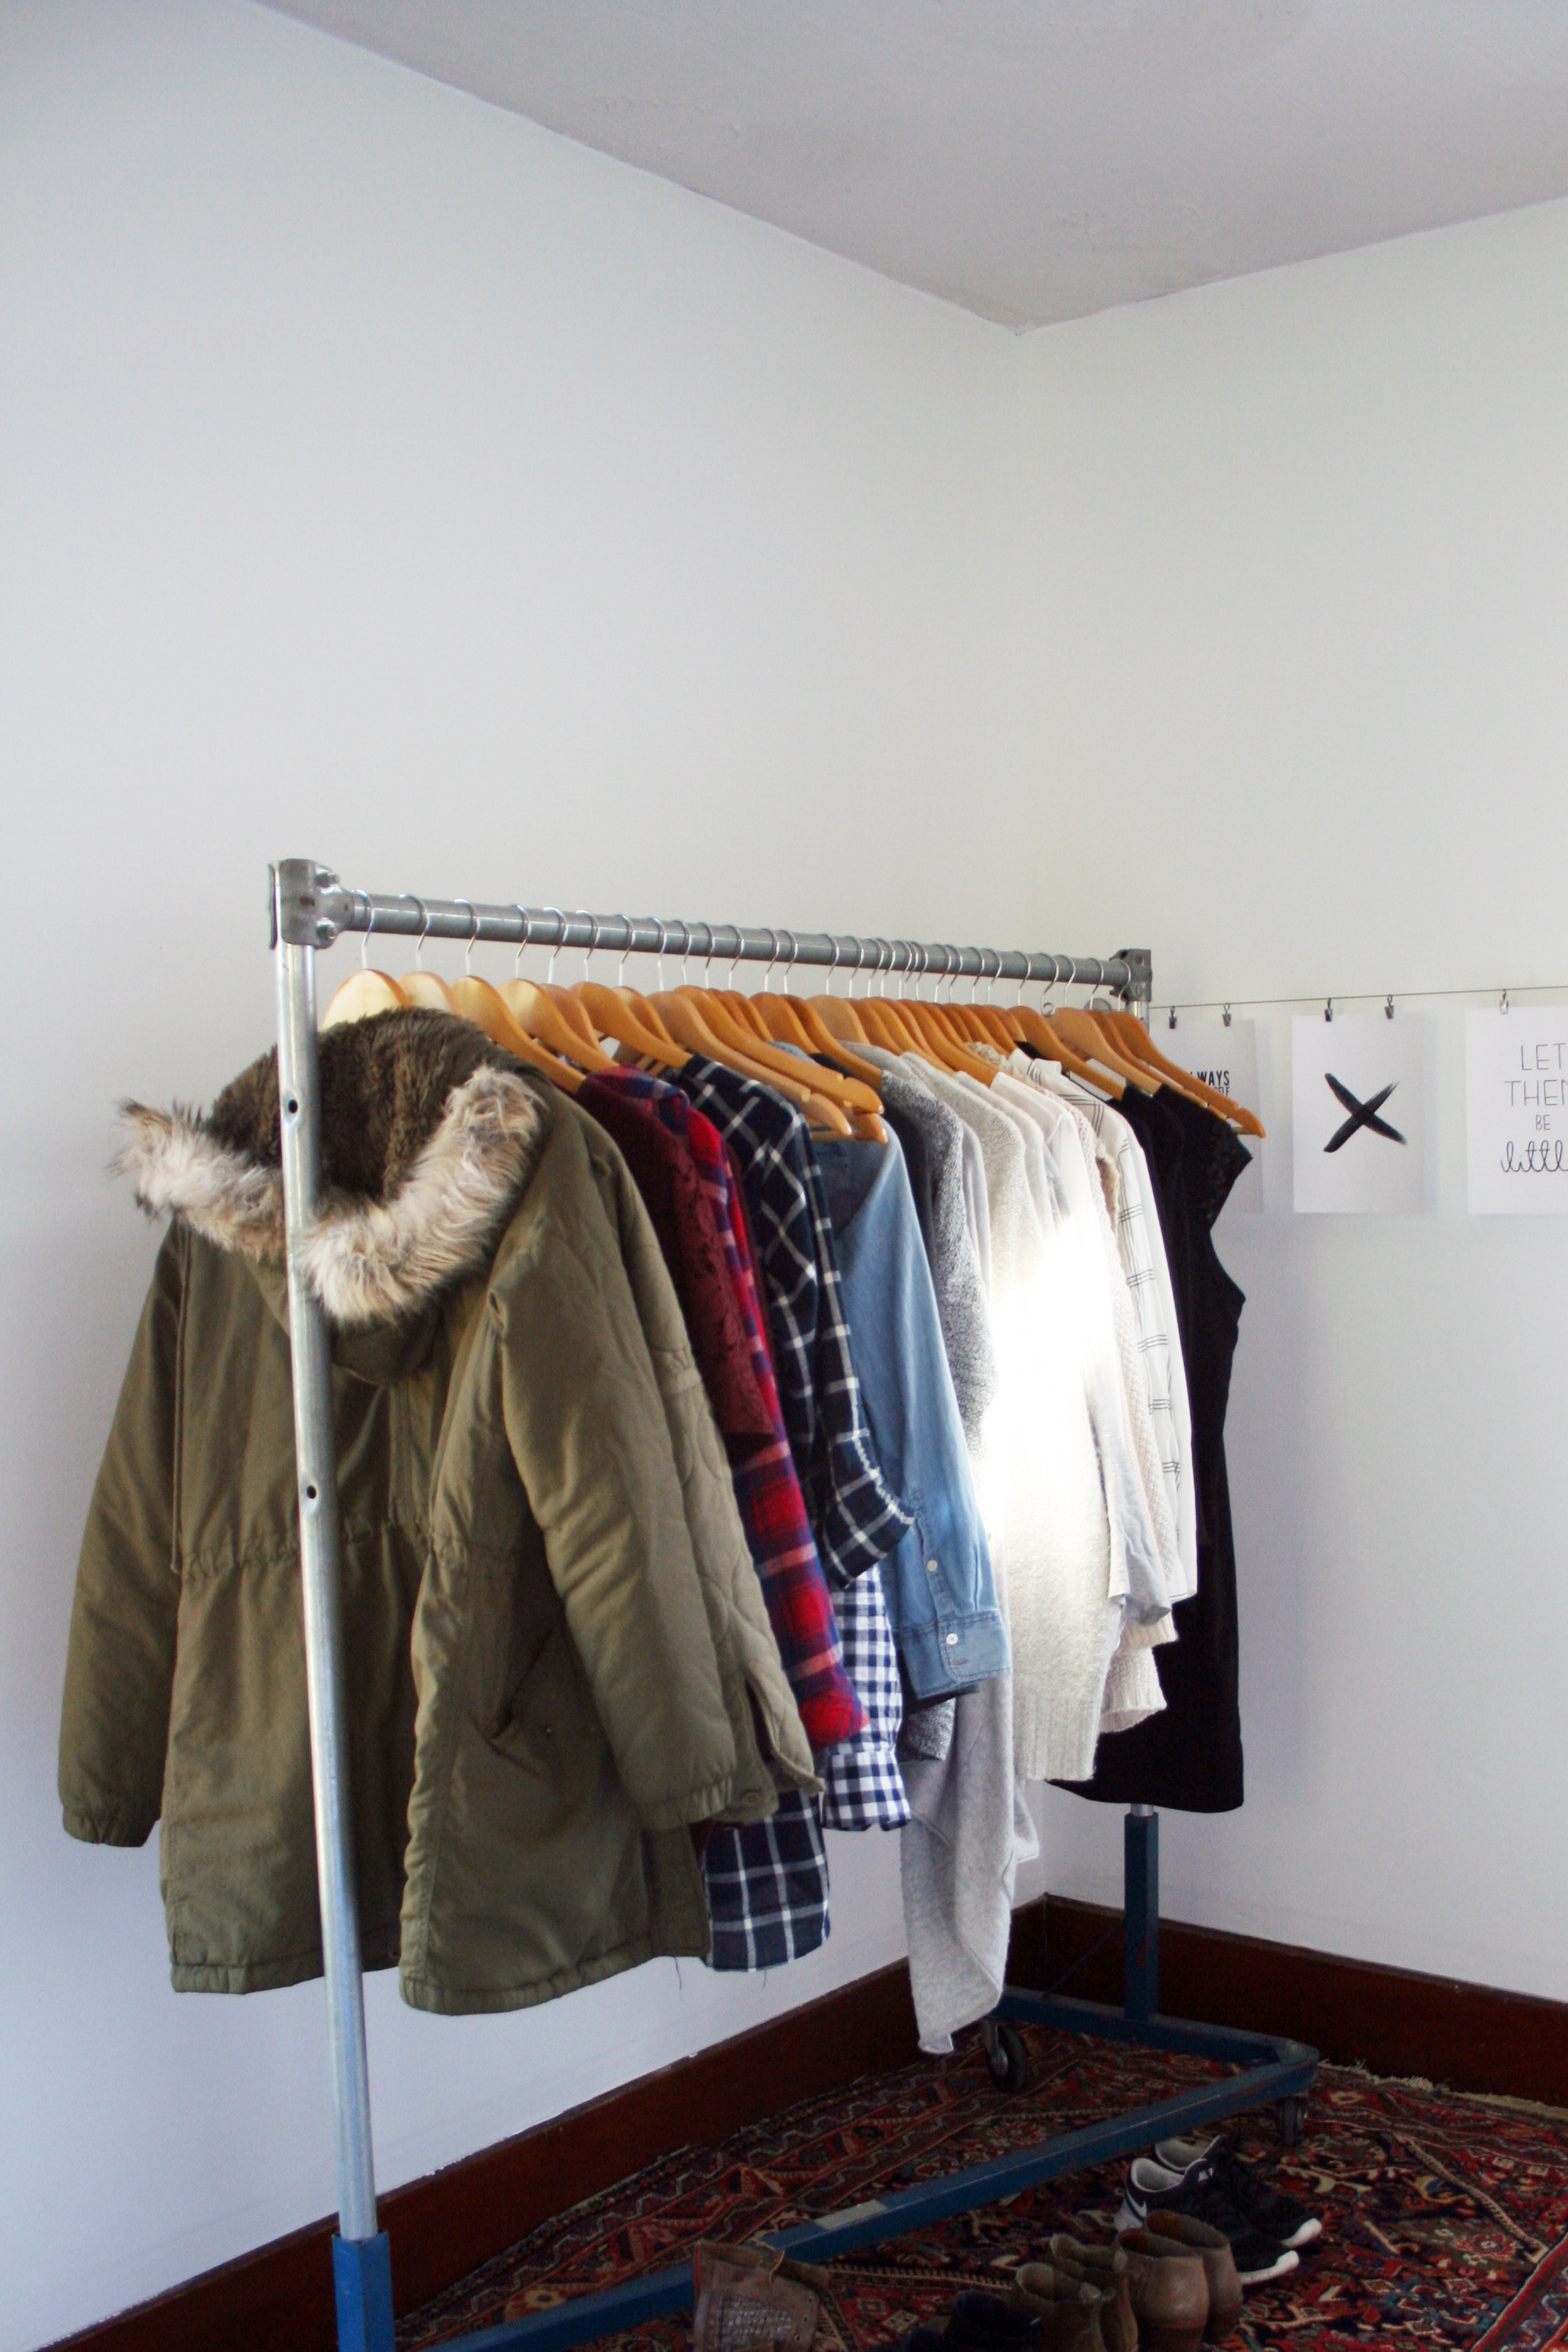 My Capsule Wardrobe / Winter 2015 + What's Working and What's Not